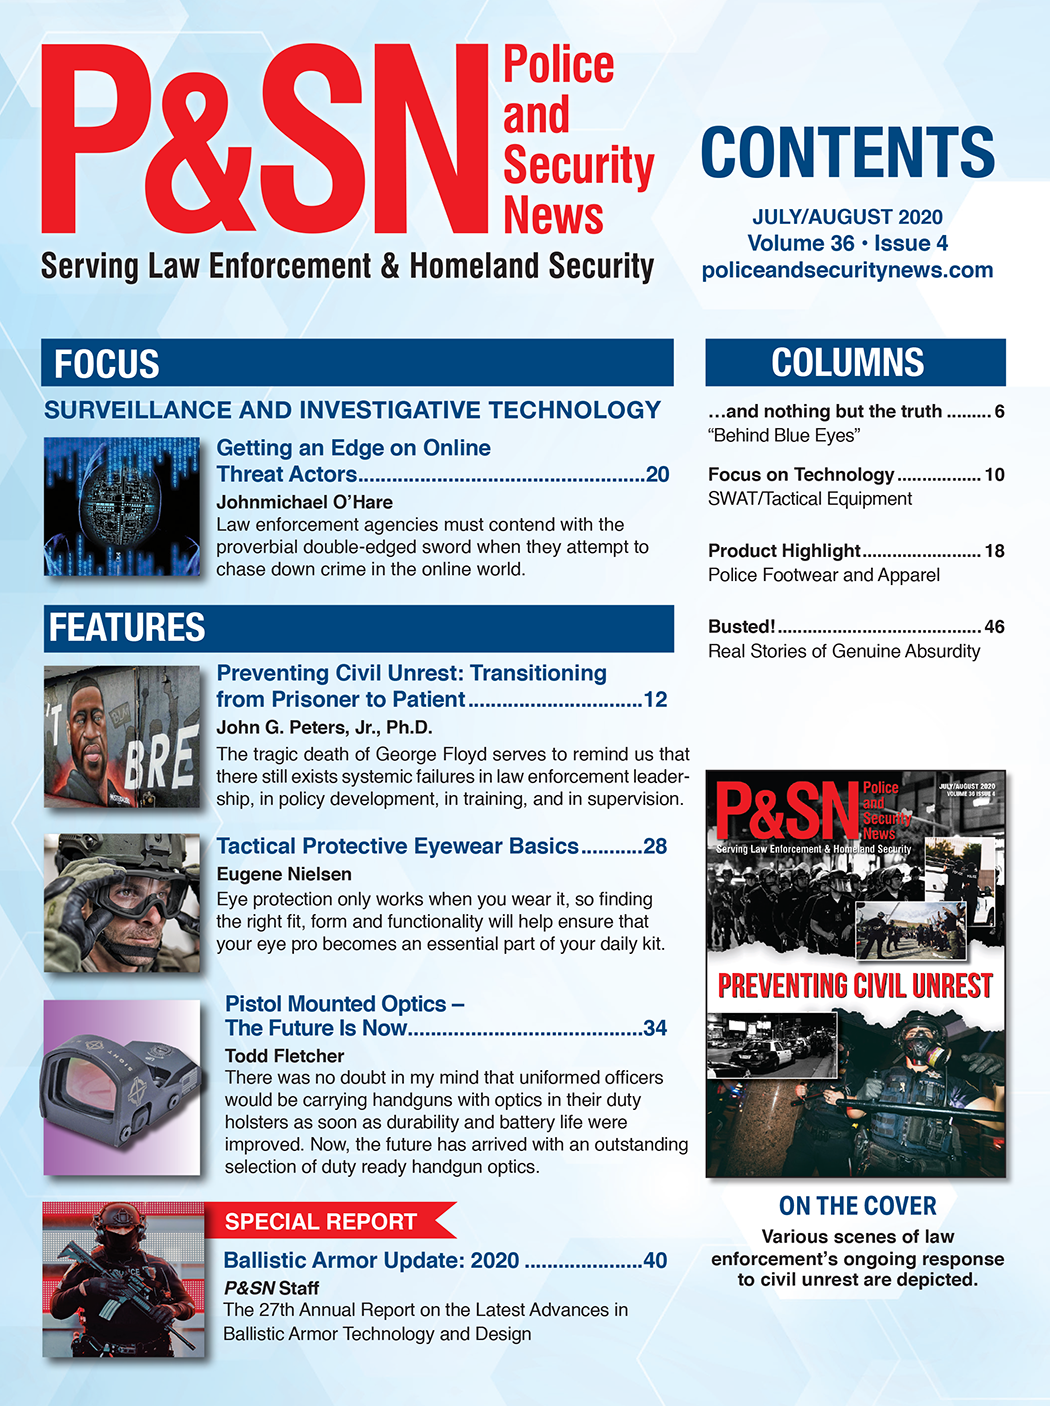 Police and Security News Table of Contents July and August